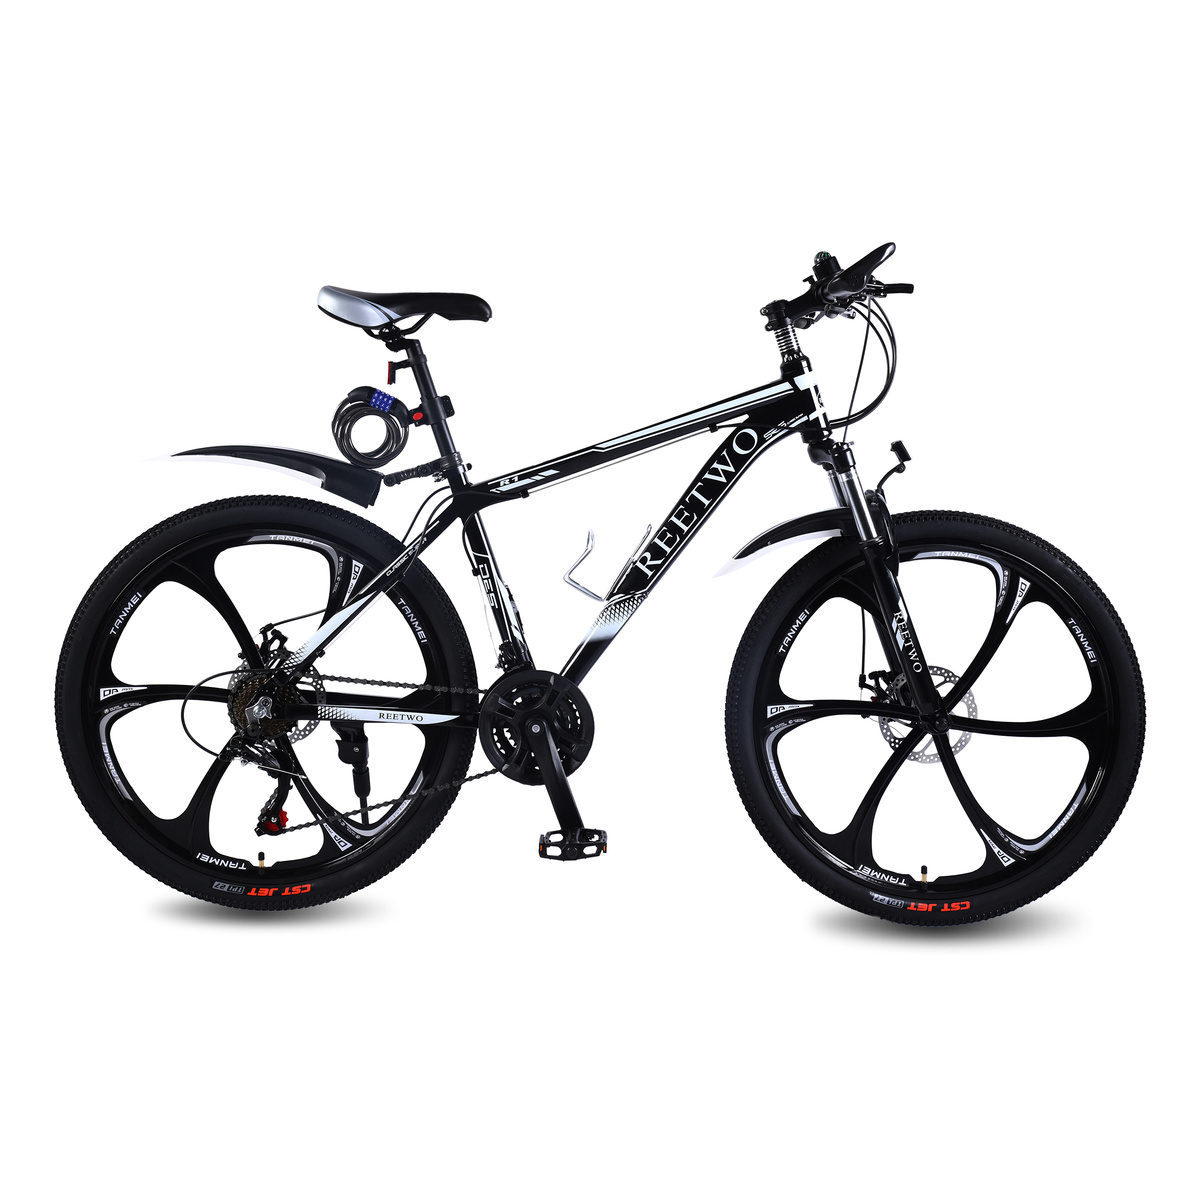 REETWO R1 26 Inchs 21 Speed  Mountain Bike Road Bicycle With Six Blade Wheel Disc Breaks And Aluminum Frame Downhill MTB Black